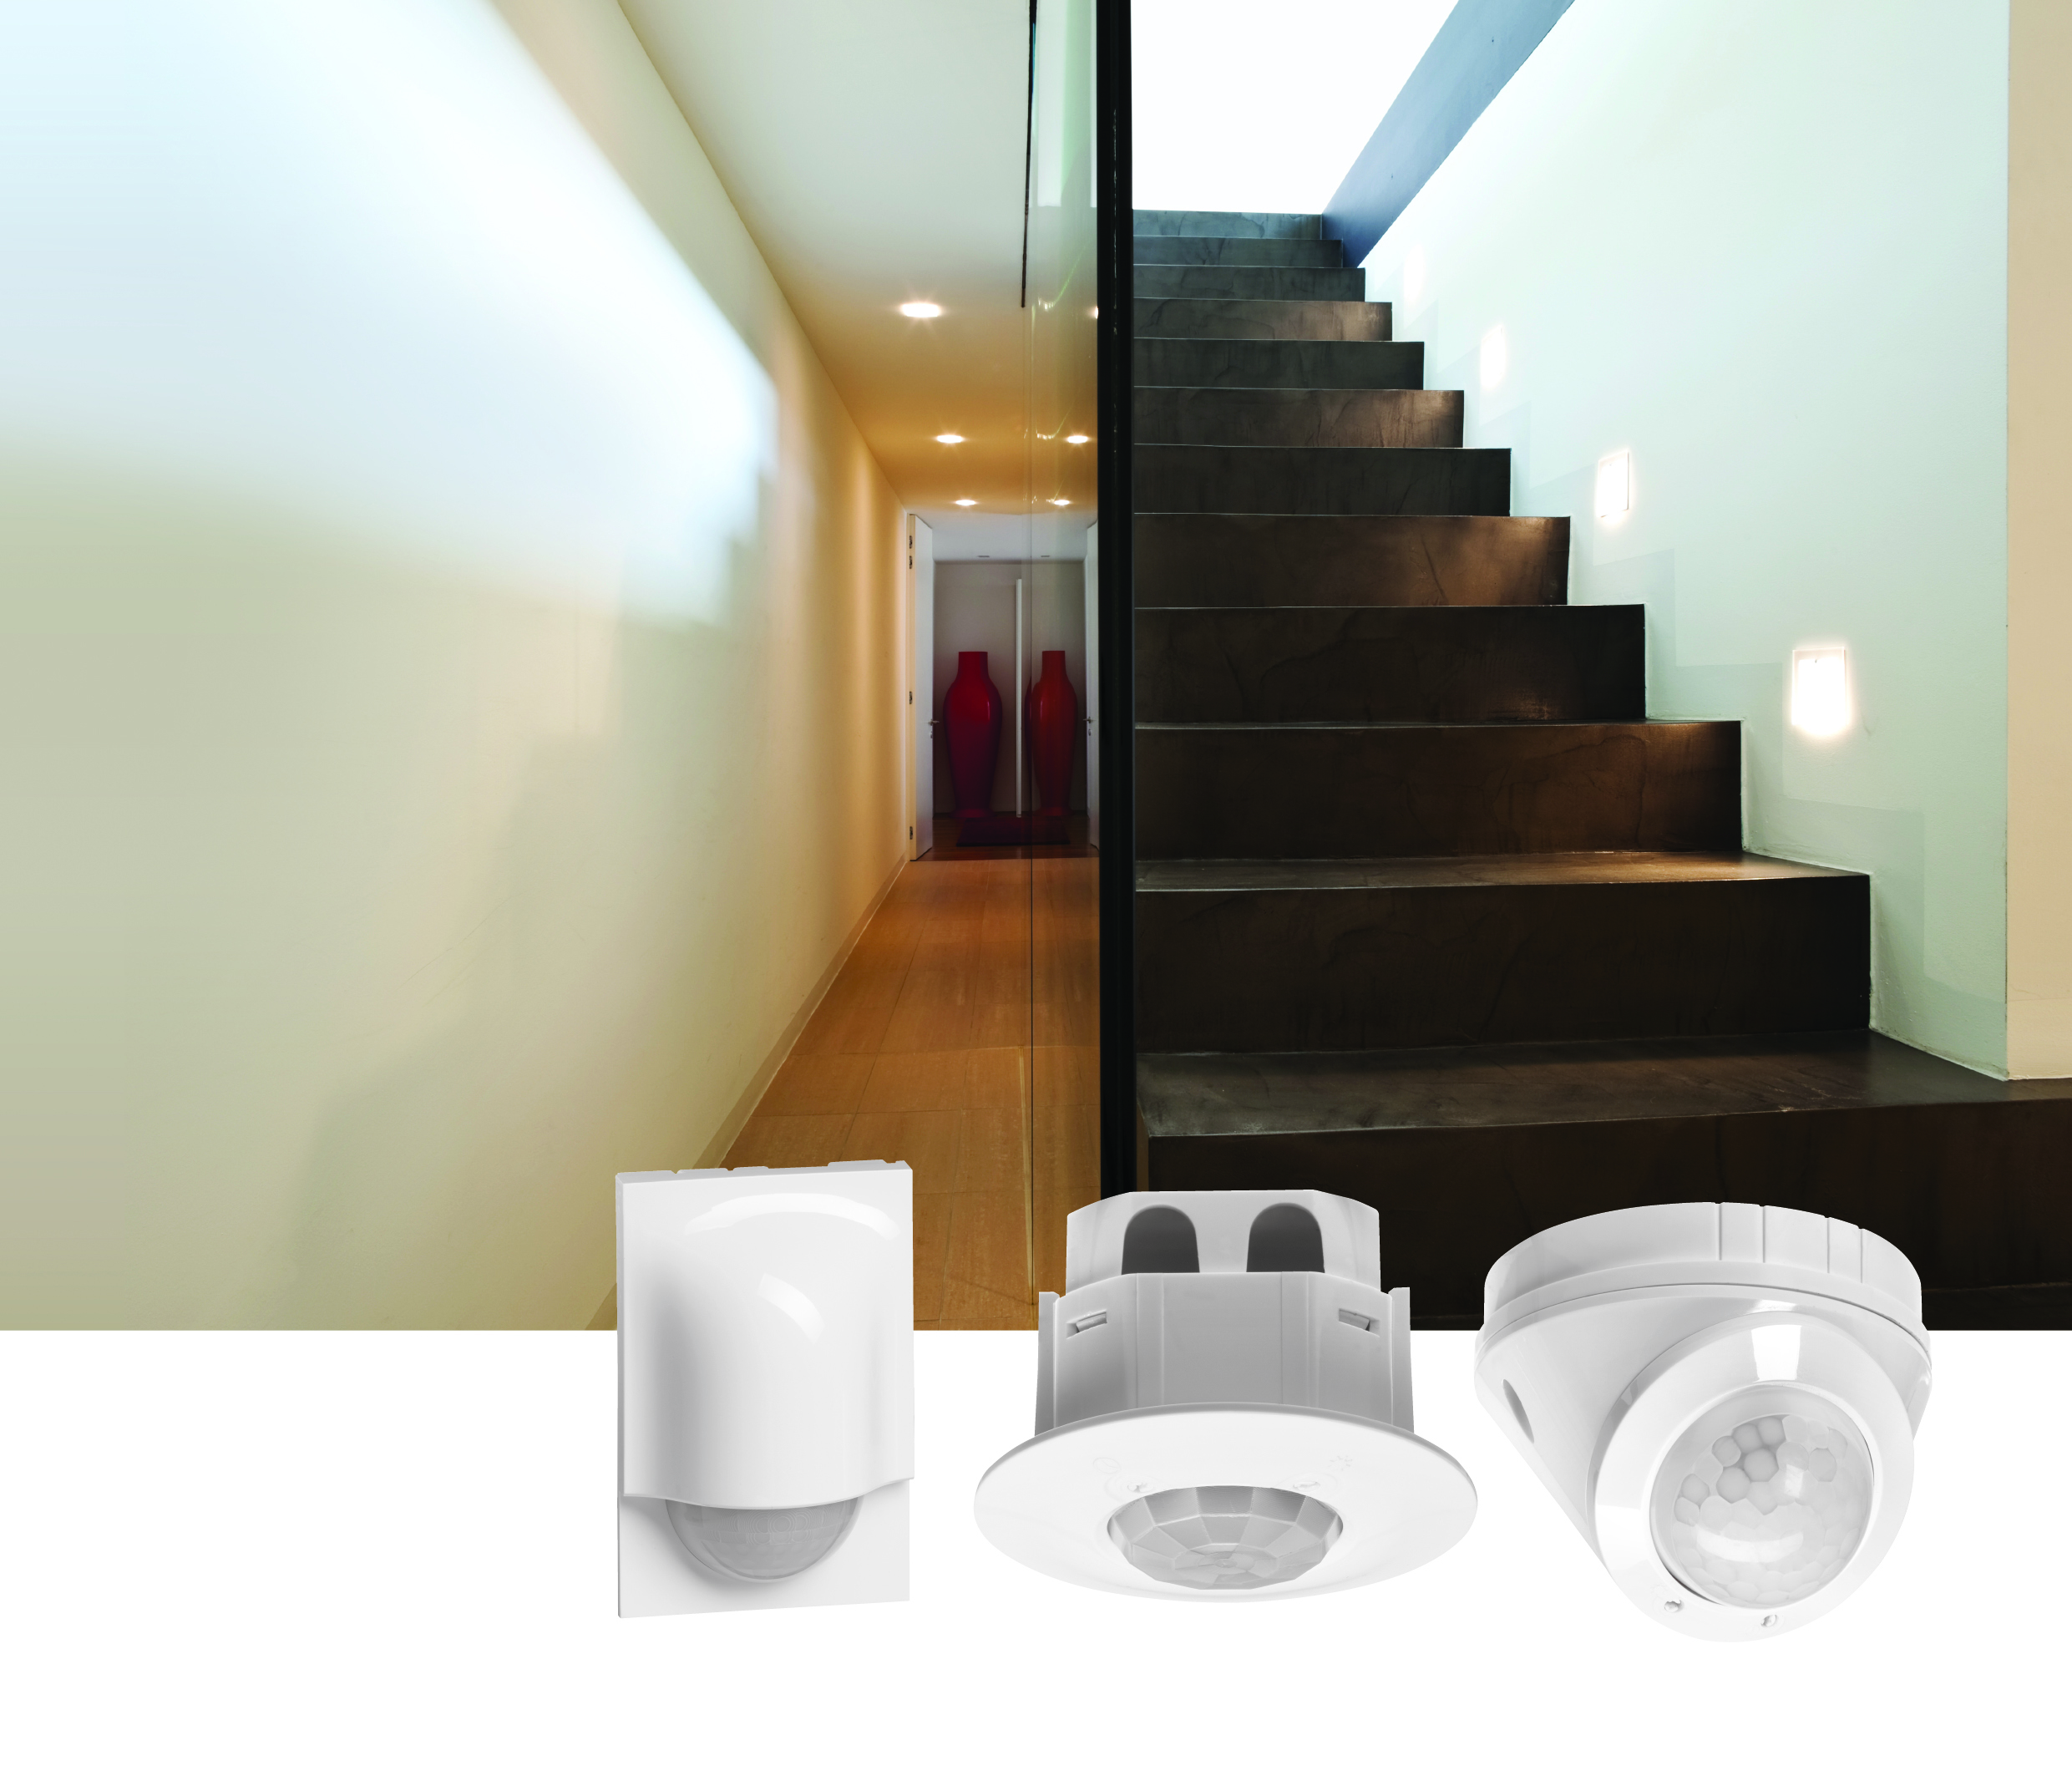 Livarno Lux Ceiling Light With Motion Sensor Instructions: Save Electricity With Motion Sensors